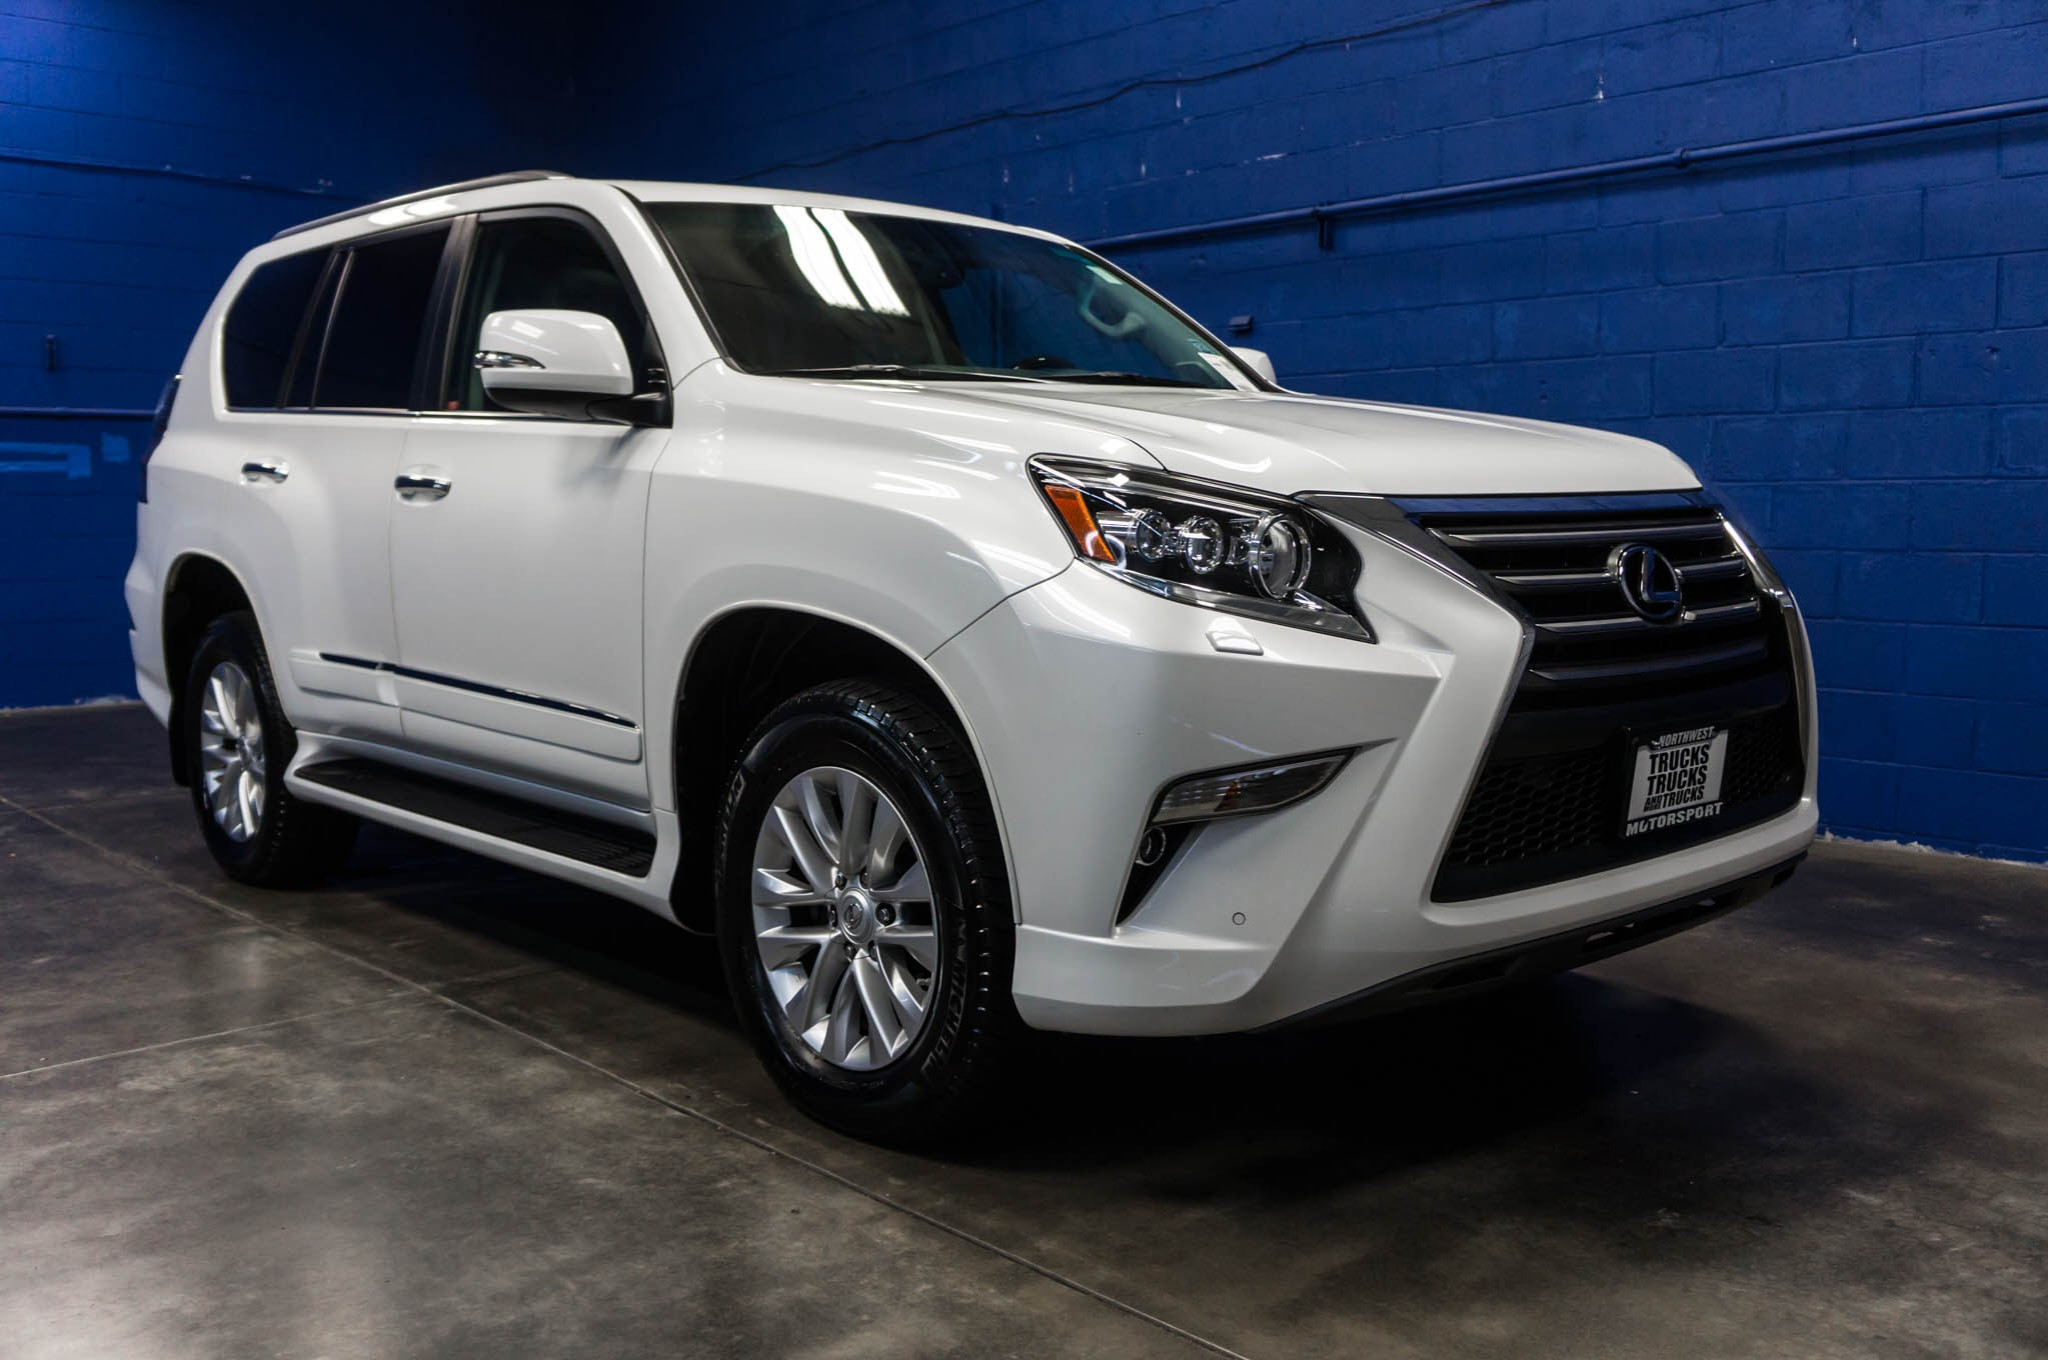 used 2014 lexus gx470 awd suv for sale 34404. Black Bedroom Furniture Sets. Home Design Ideas